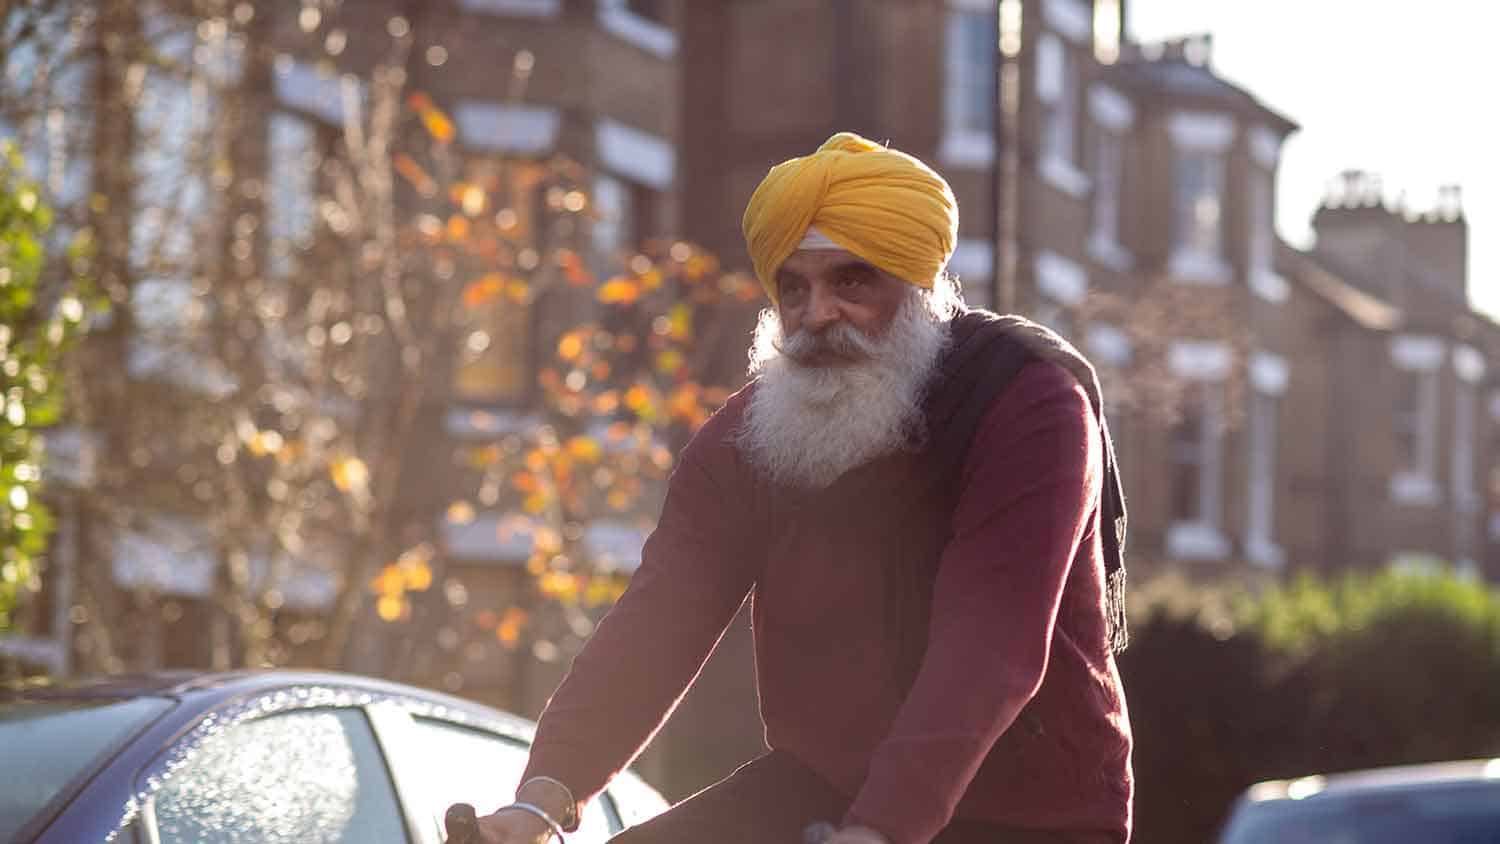 Sikh man wearing a yellow turban riding a bicycle